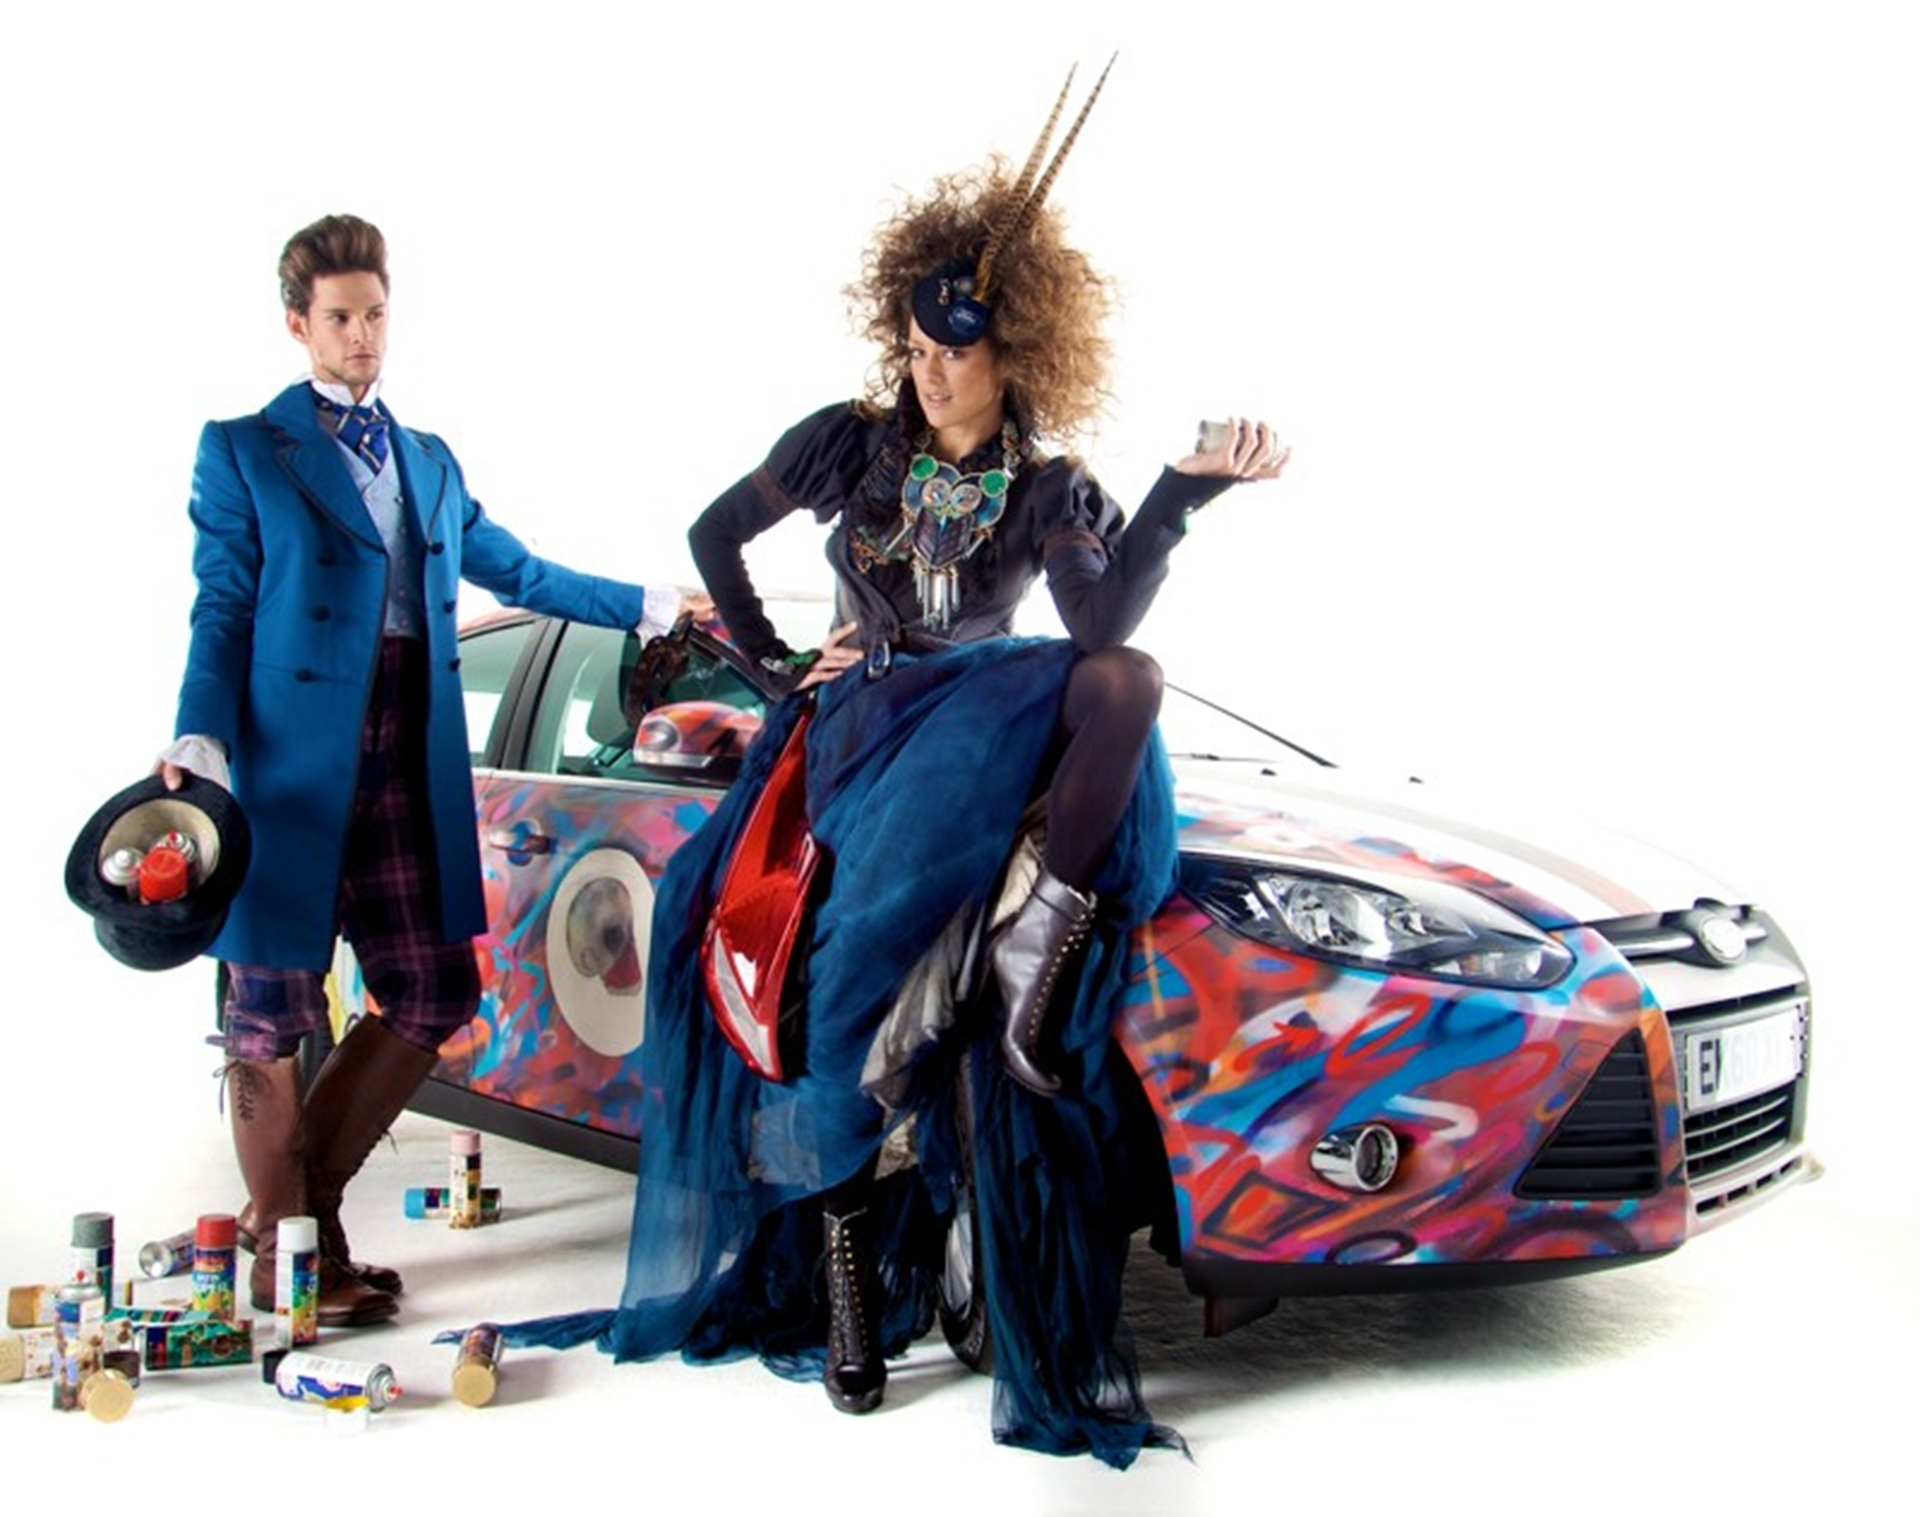 Ford Model in Focus parts dress designed by Judy Clark